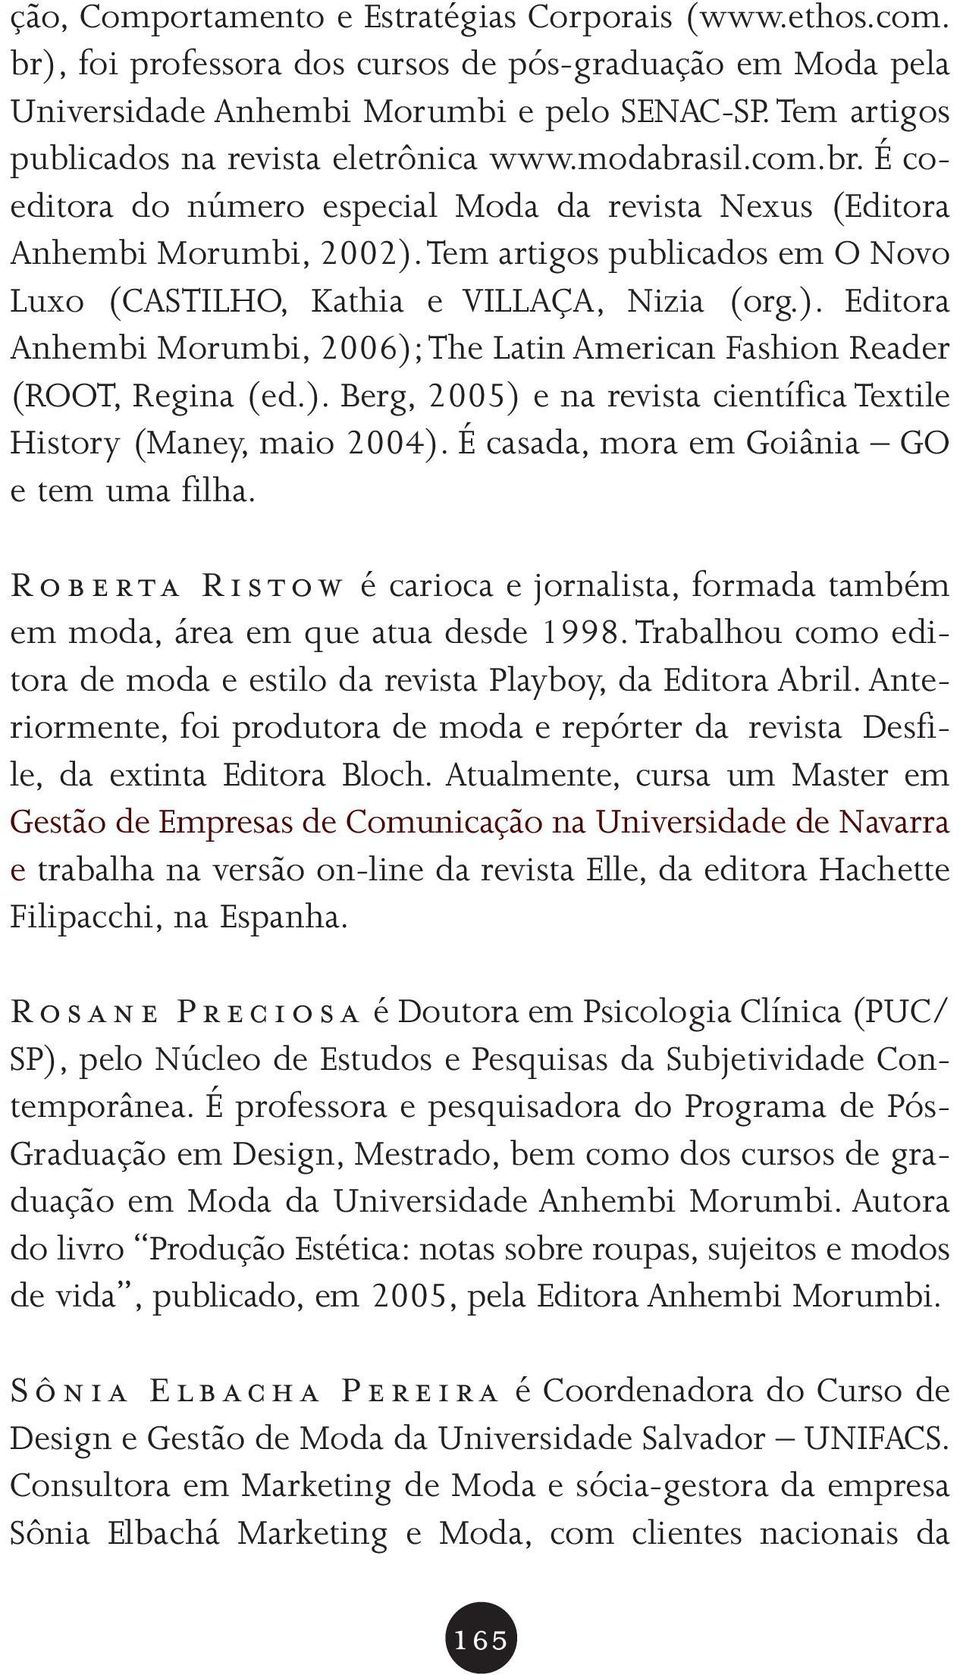 Tem artigos publicados em O Novo Luxo (CASTILHO, Kathia e VILLAÇA, Nizia (org.). Editora Anhembi Morumbi, 2006);The Latin American Fashion Reader (ROOT, Regina (ed.). Berg, 2005) e na revista científica Textile History (Maney, maio 2004).